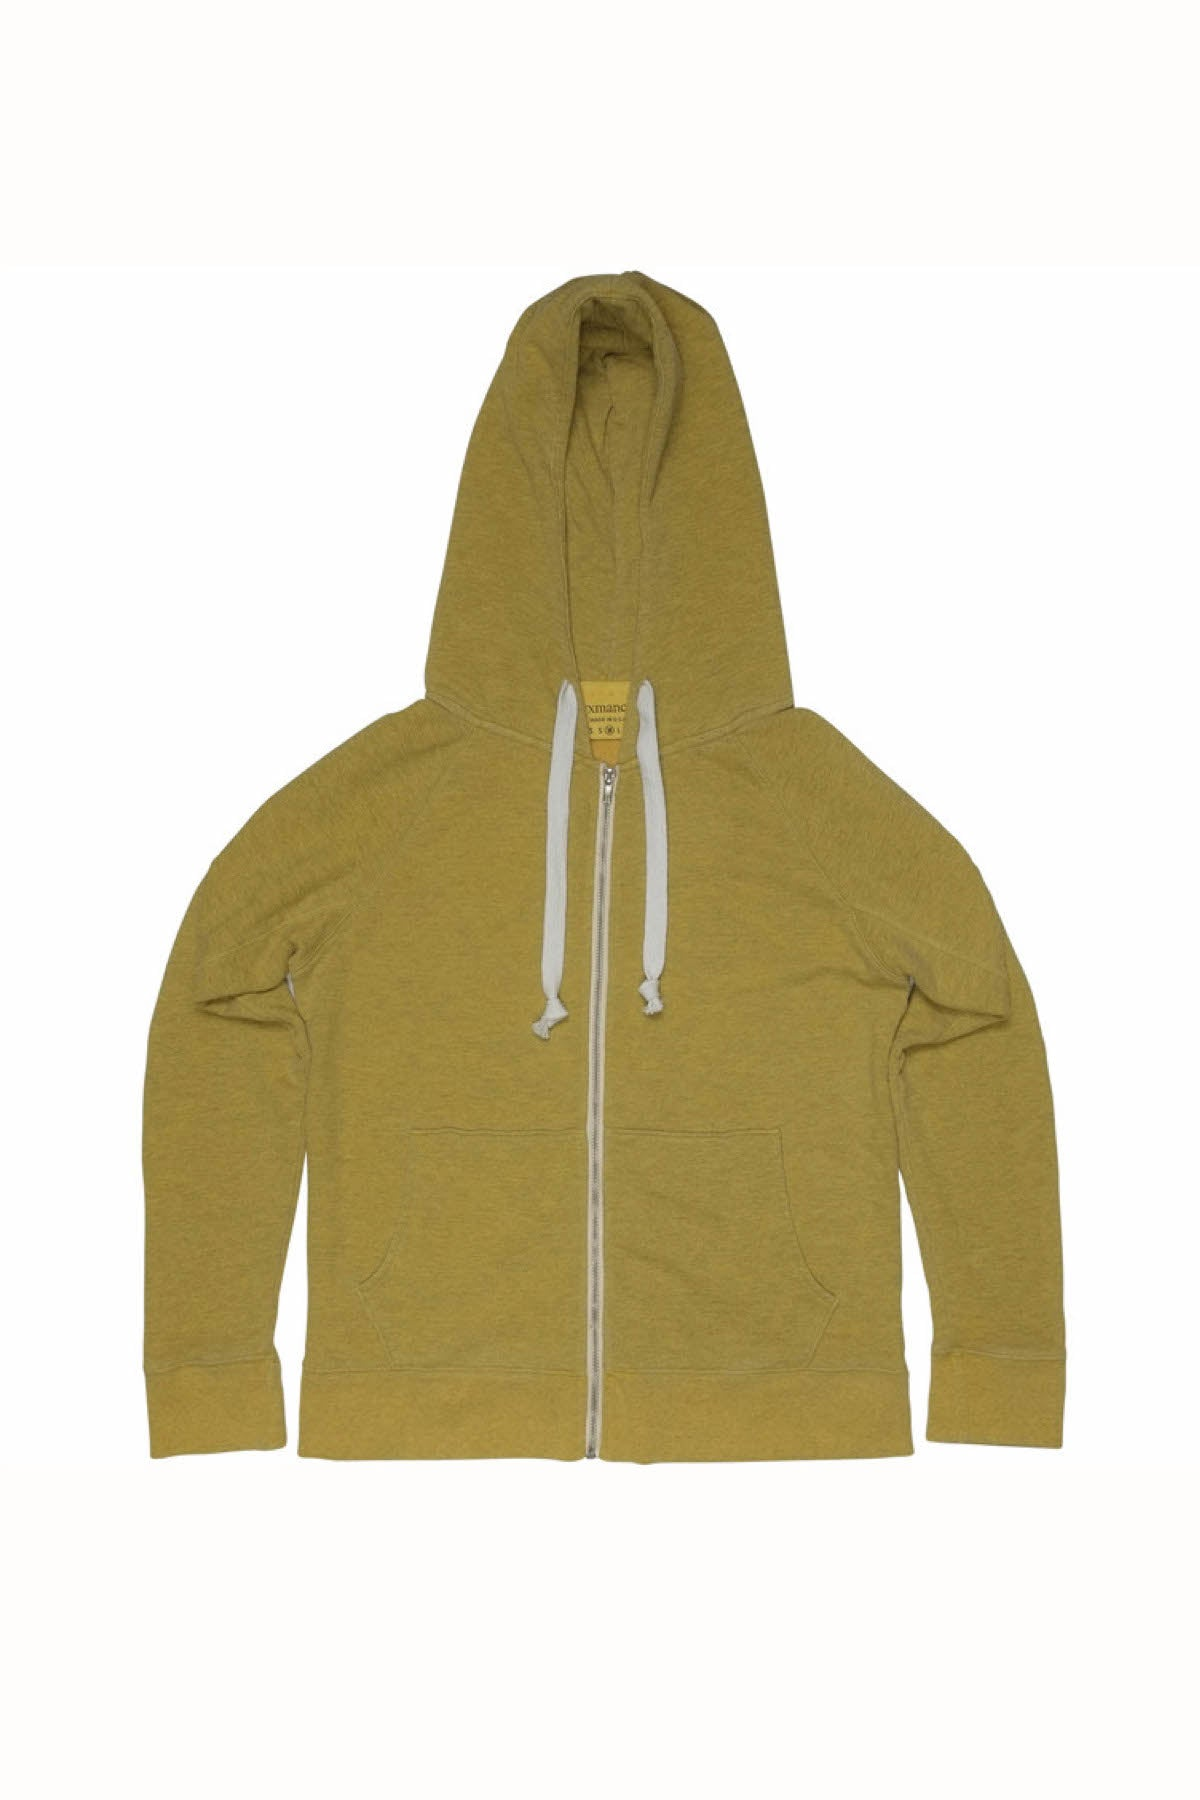 Rxmance Unisex Gold Hooded Zip Sweatshirt